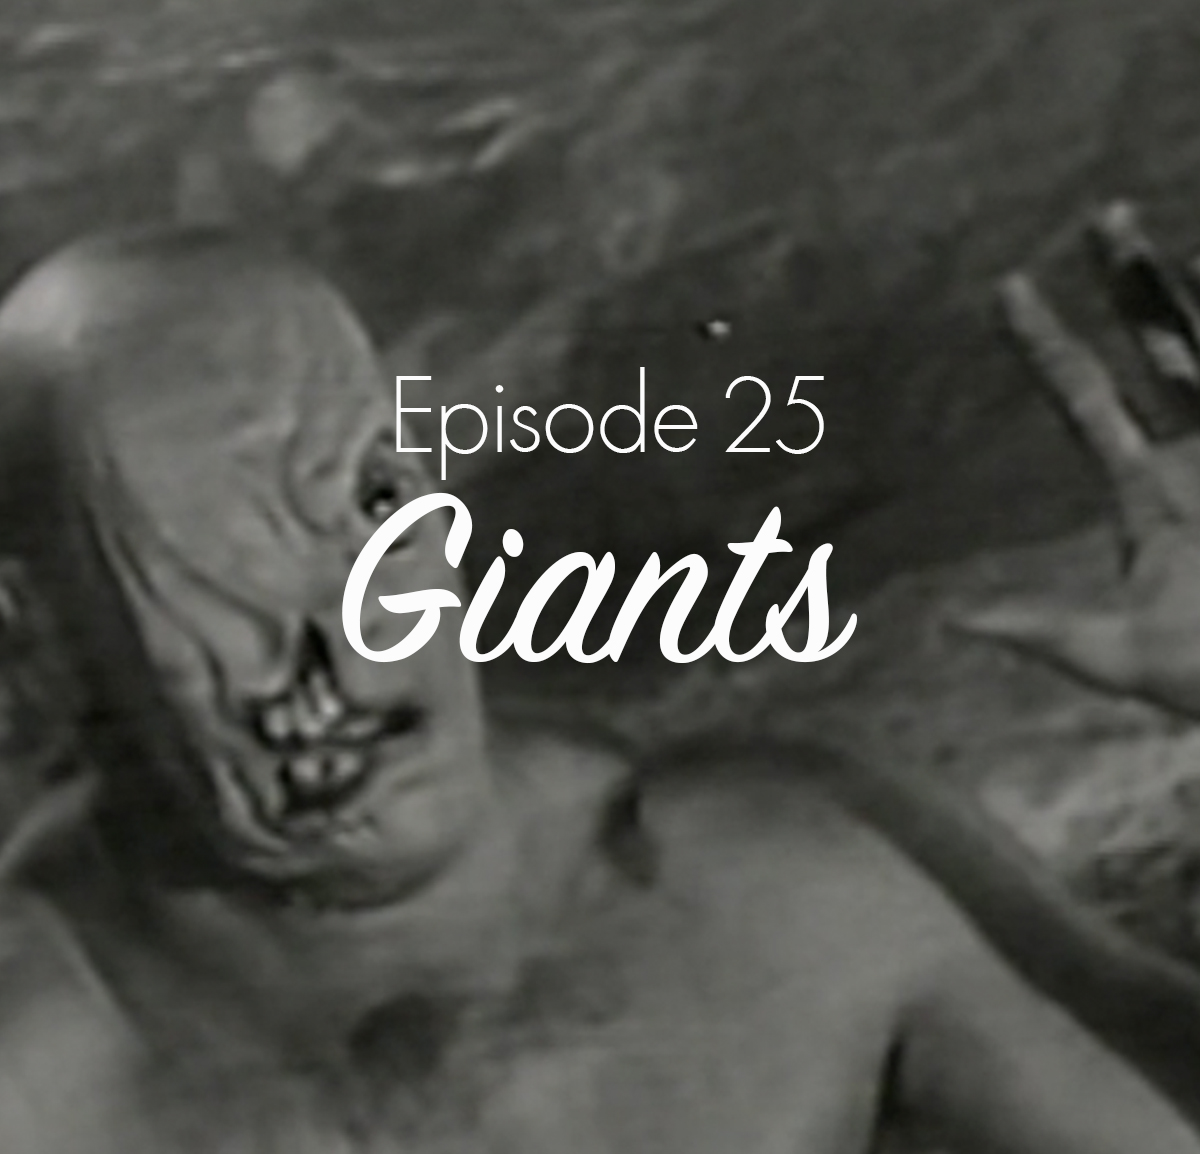 100 Years of Horror brings you stories of giants